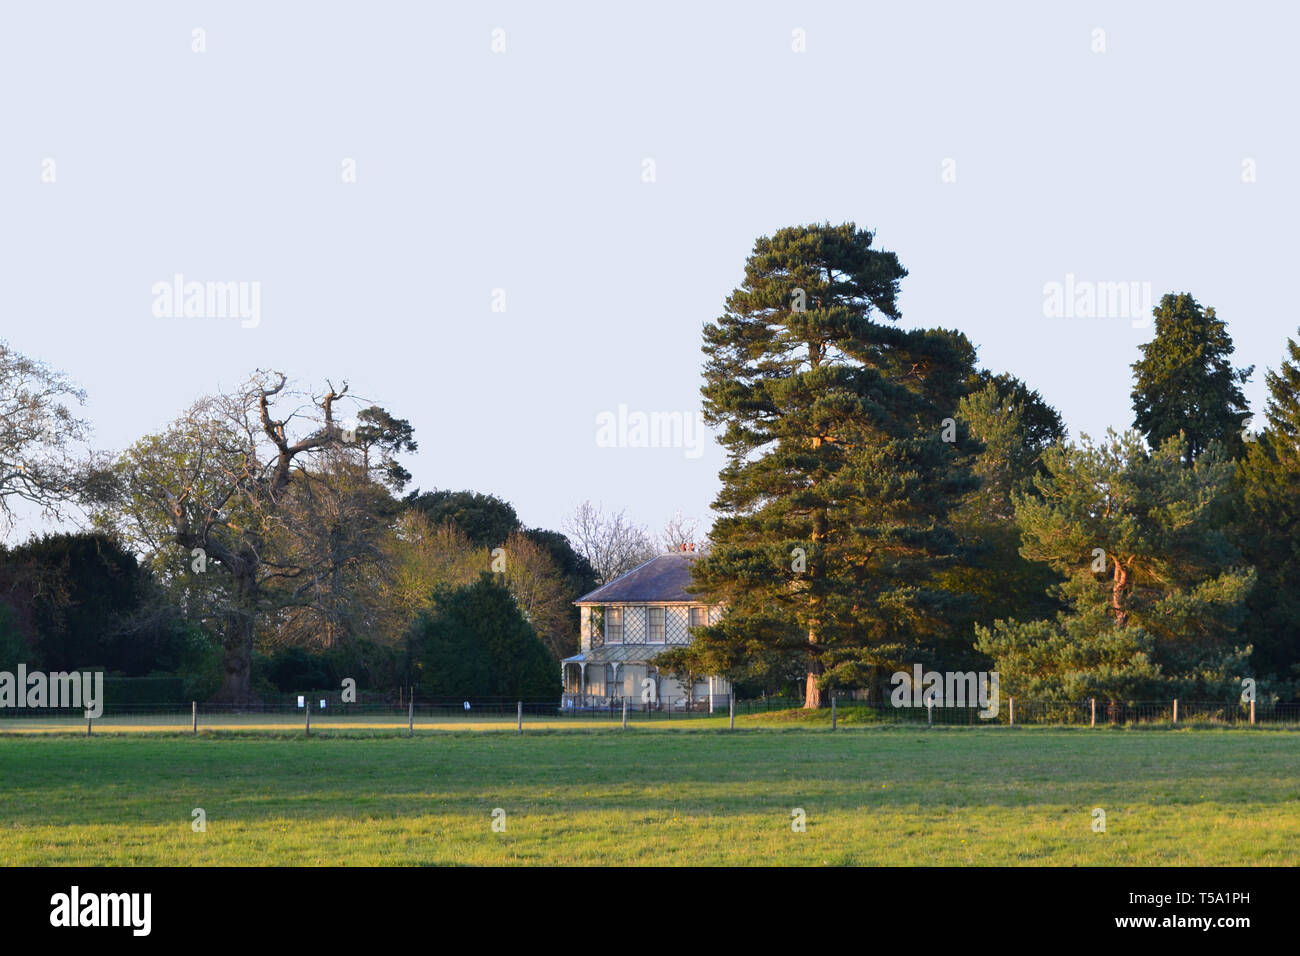 Rear of Down House, where scientist Charles Darwin and family lived in the 19th century. Now an English Heritage property. At Downe, Bromley, Kent. - Stock Image